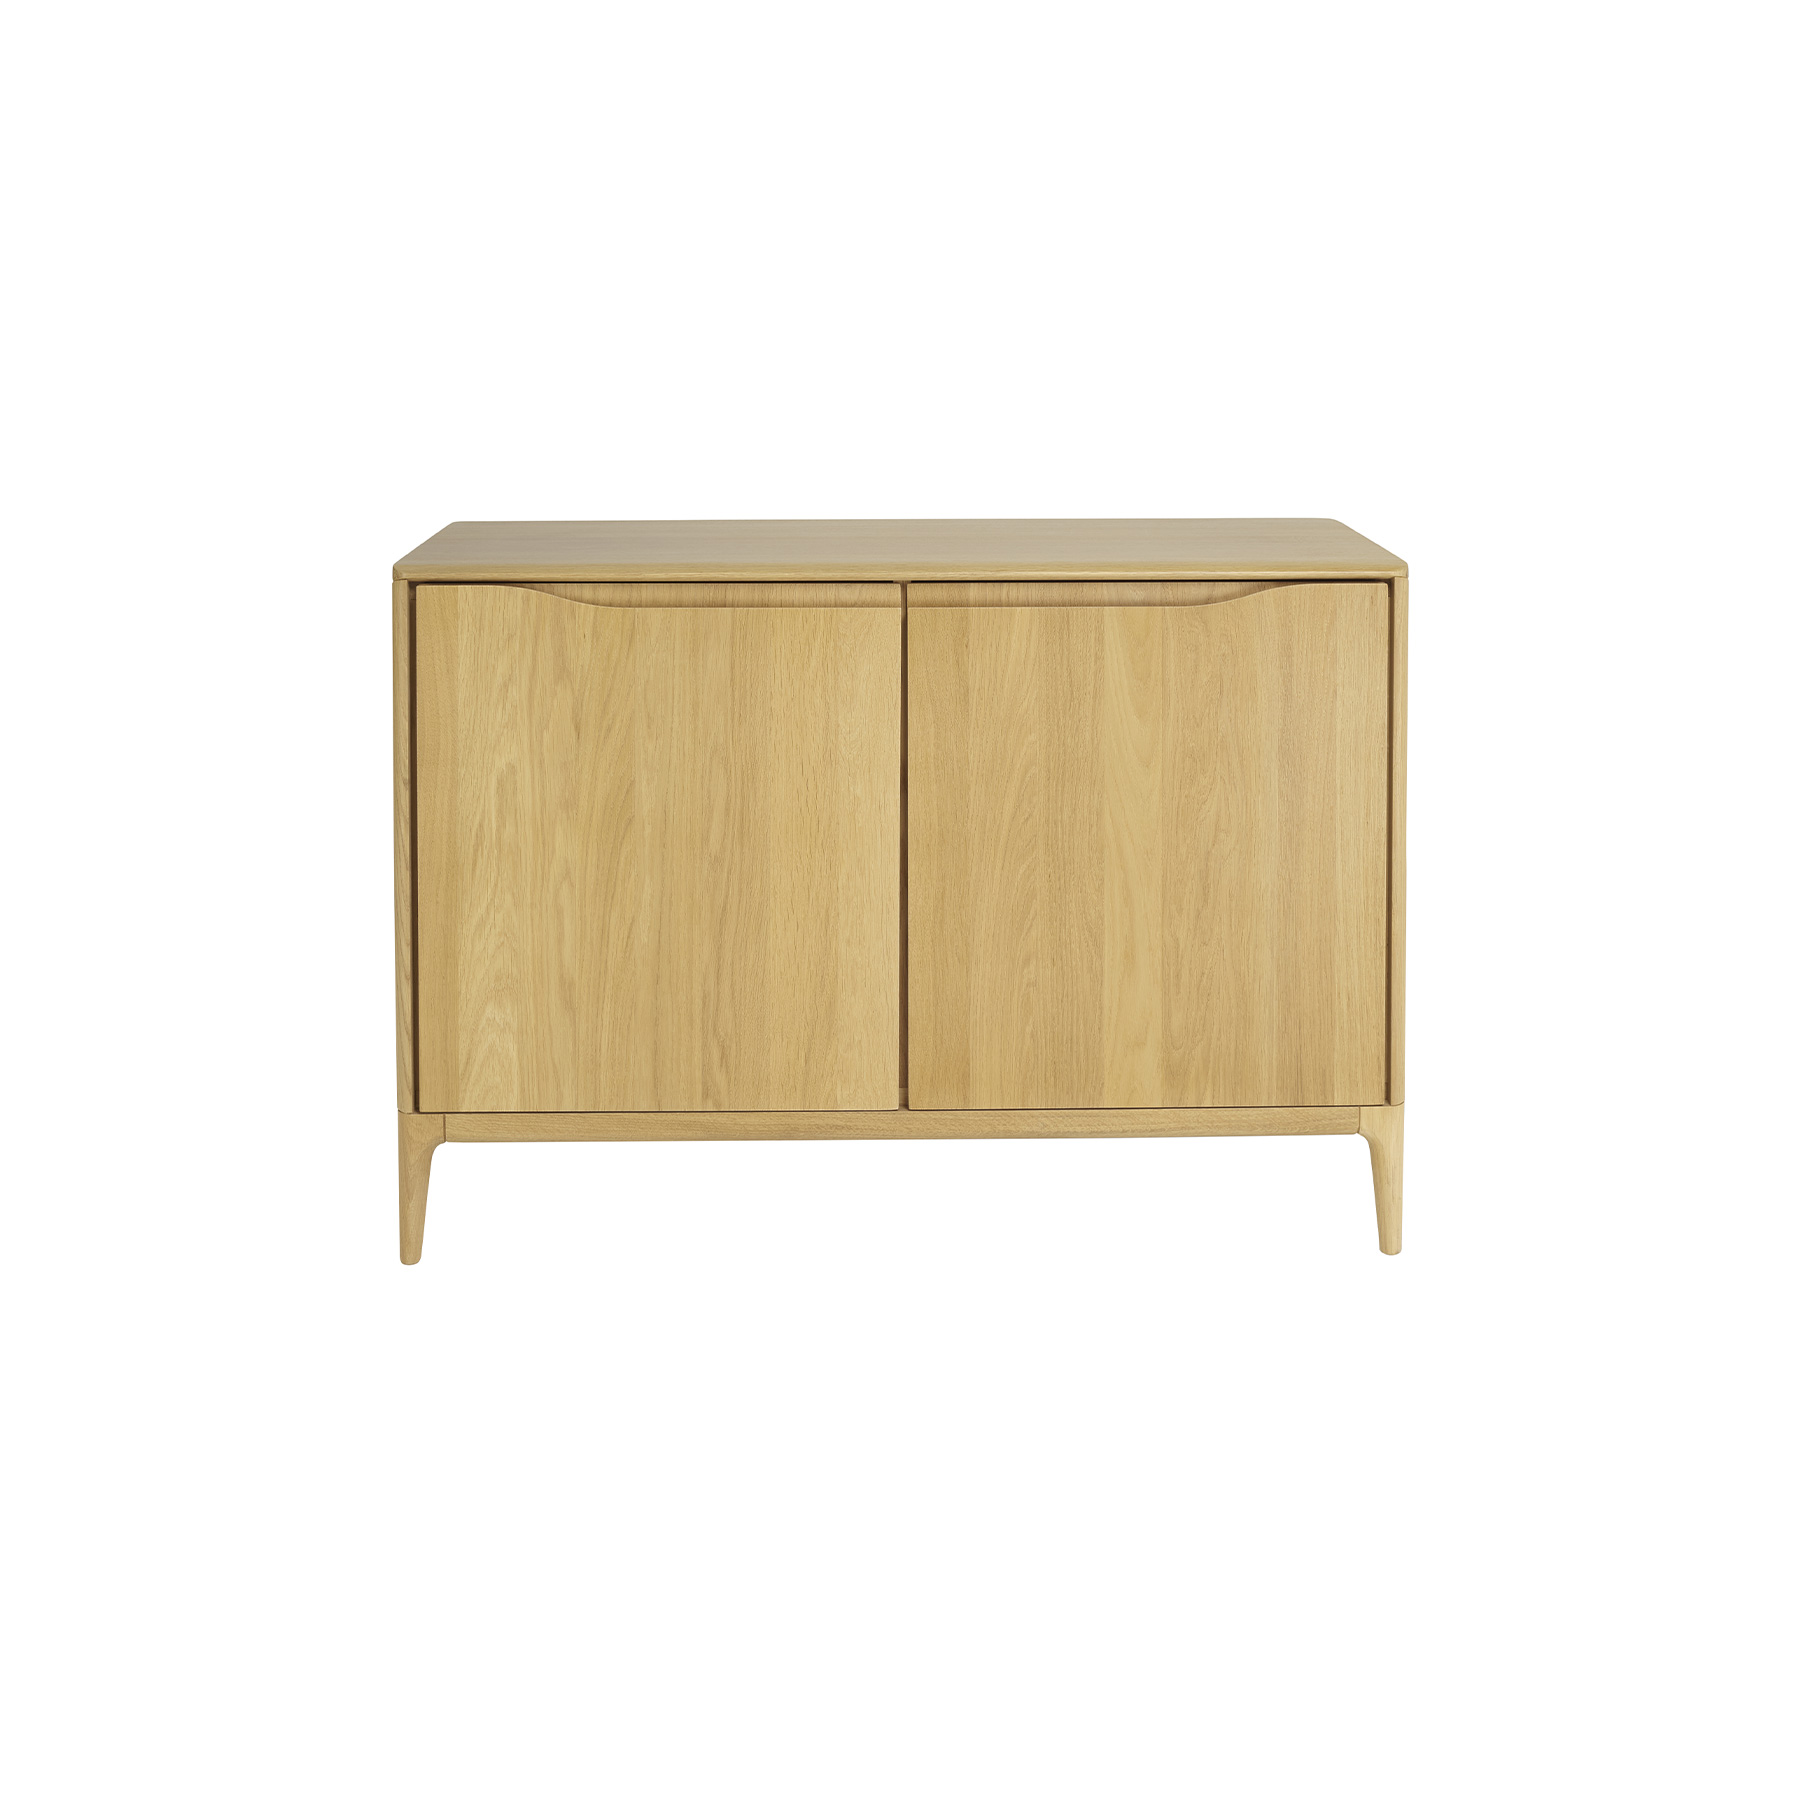 Romana 2 Door Sideboard - Romana is a modern dining and living-room furniture collection with soft curves and sophisticated craftsmanship that emphasises Ercol's skill in working with solid timber. Romana is made from pale oak and finished in a clear matt lacquer to both protect the timber and show off its beauty. This oak sideboard has two separate storage cupboards providing plenty of storage space.  The front edge of the sideboard top bears the signature soft curve, and the legs have the fluid organic curves and chamfers, that characterise Romana. The cupboard sections each have a wooden shelf mounted on pins and can be adjusted in height. The door hinges have soft-close mechanisms to give a gentle shut.